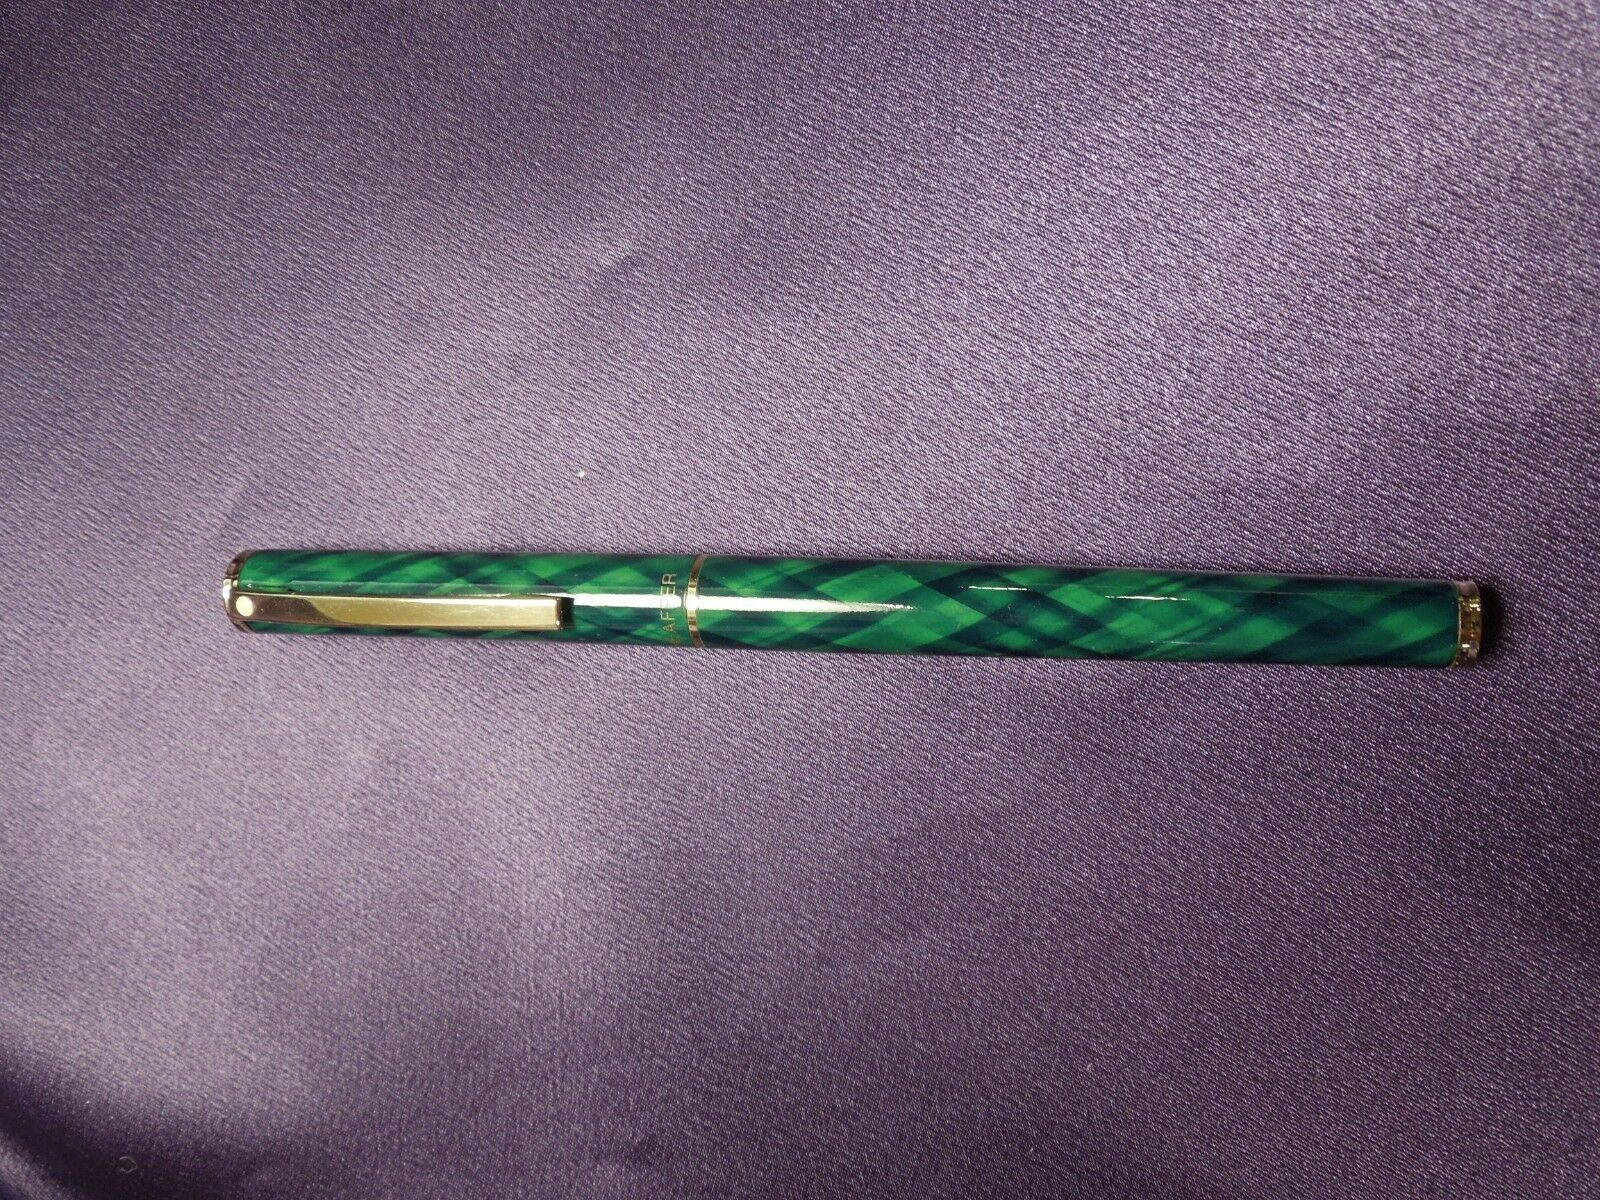 Green & Gold Sheaffer Ballpoint Pen in Original Red and Gold Box image 4